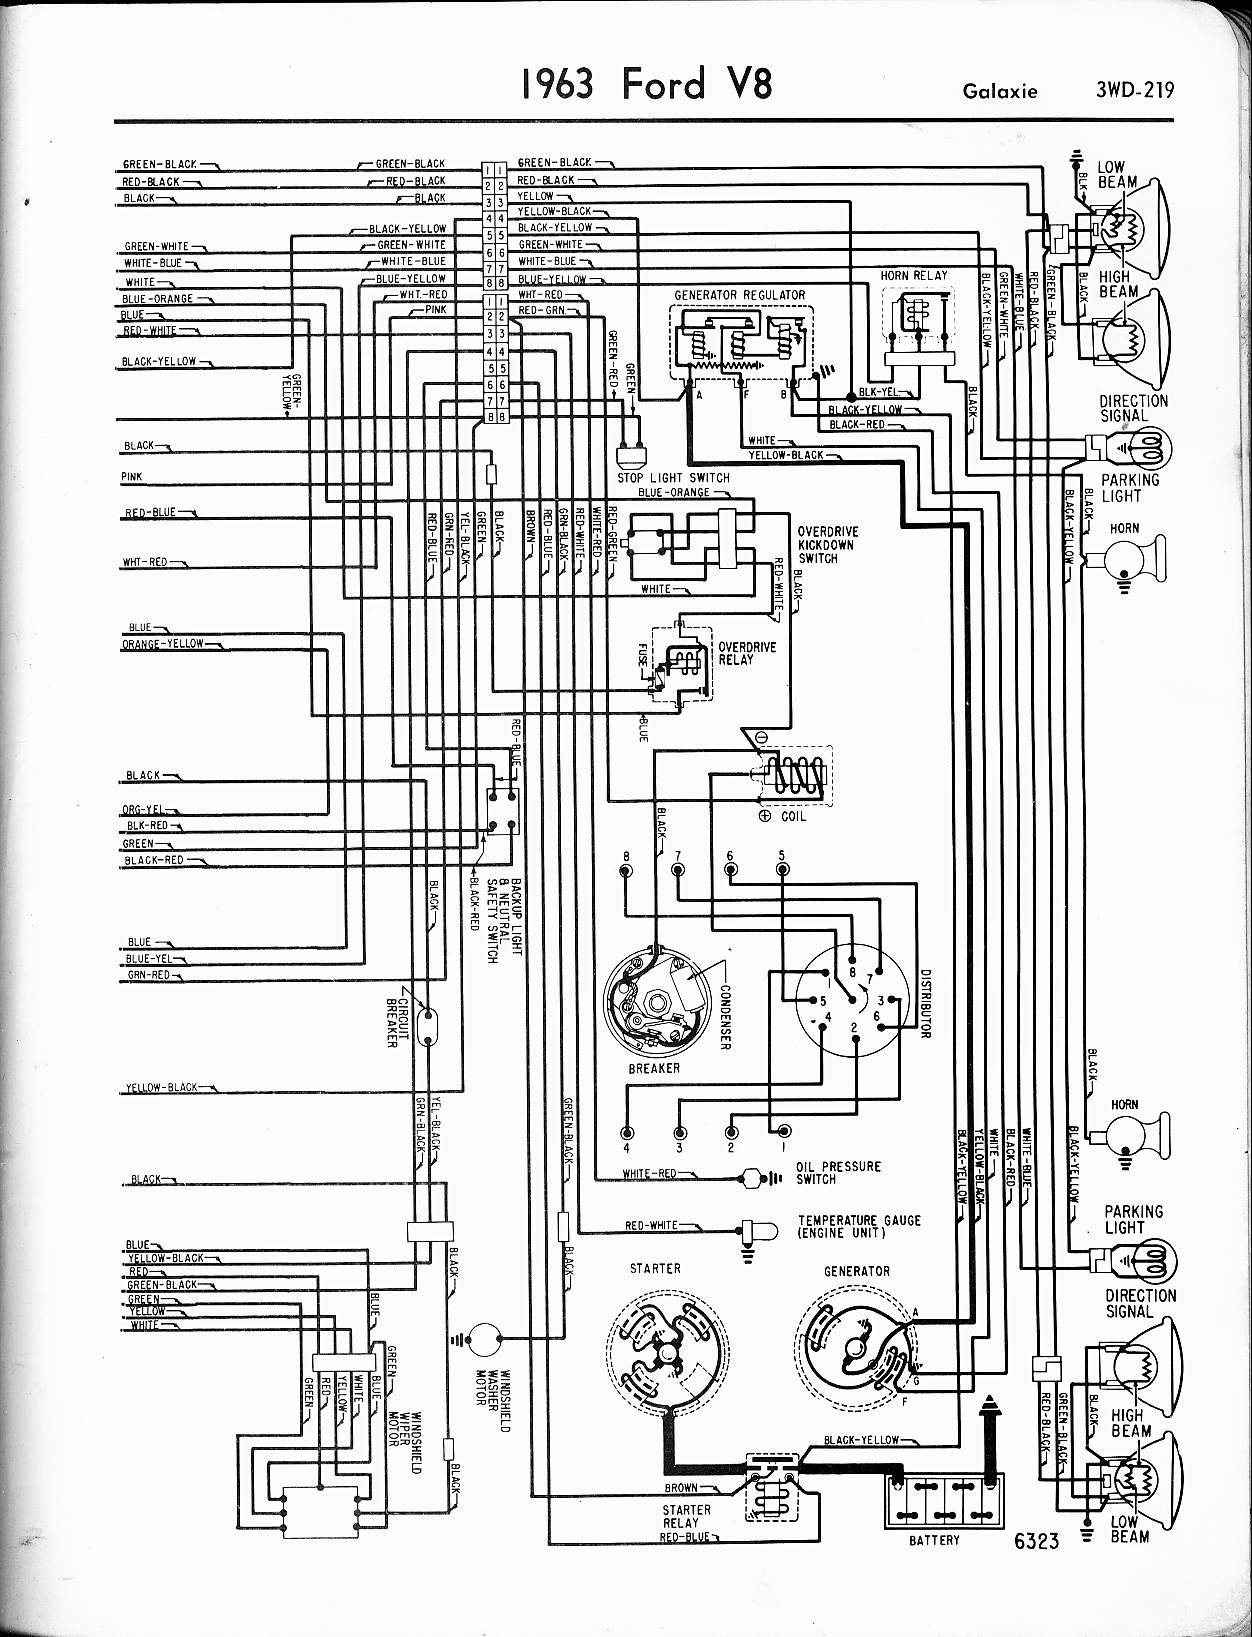 1968 ford convertible wiring diagram starting know about wiring 1996 ford ranger wiring diagram 1968 ford [ 1252 x 1637 Pixel ]